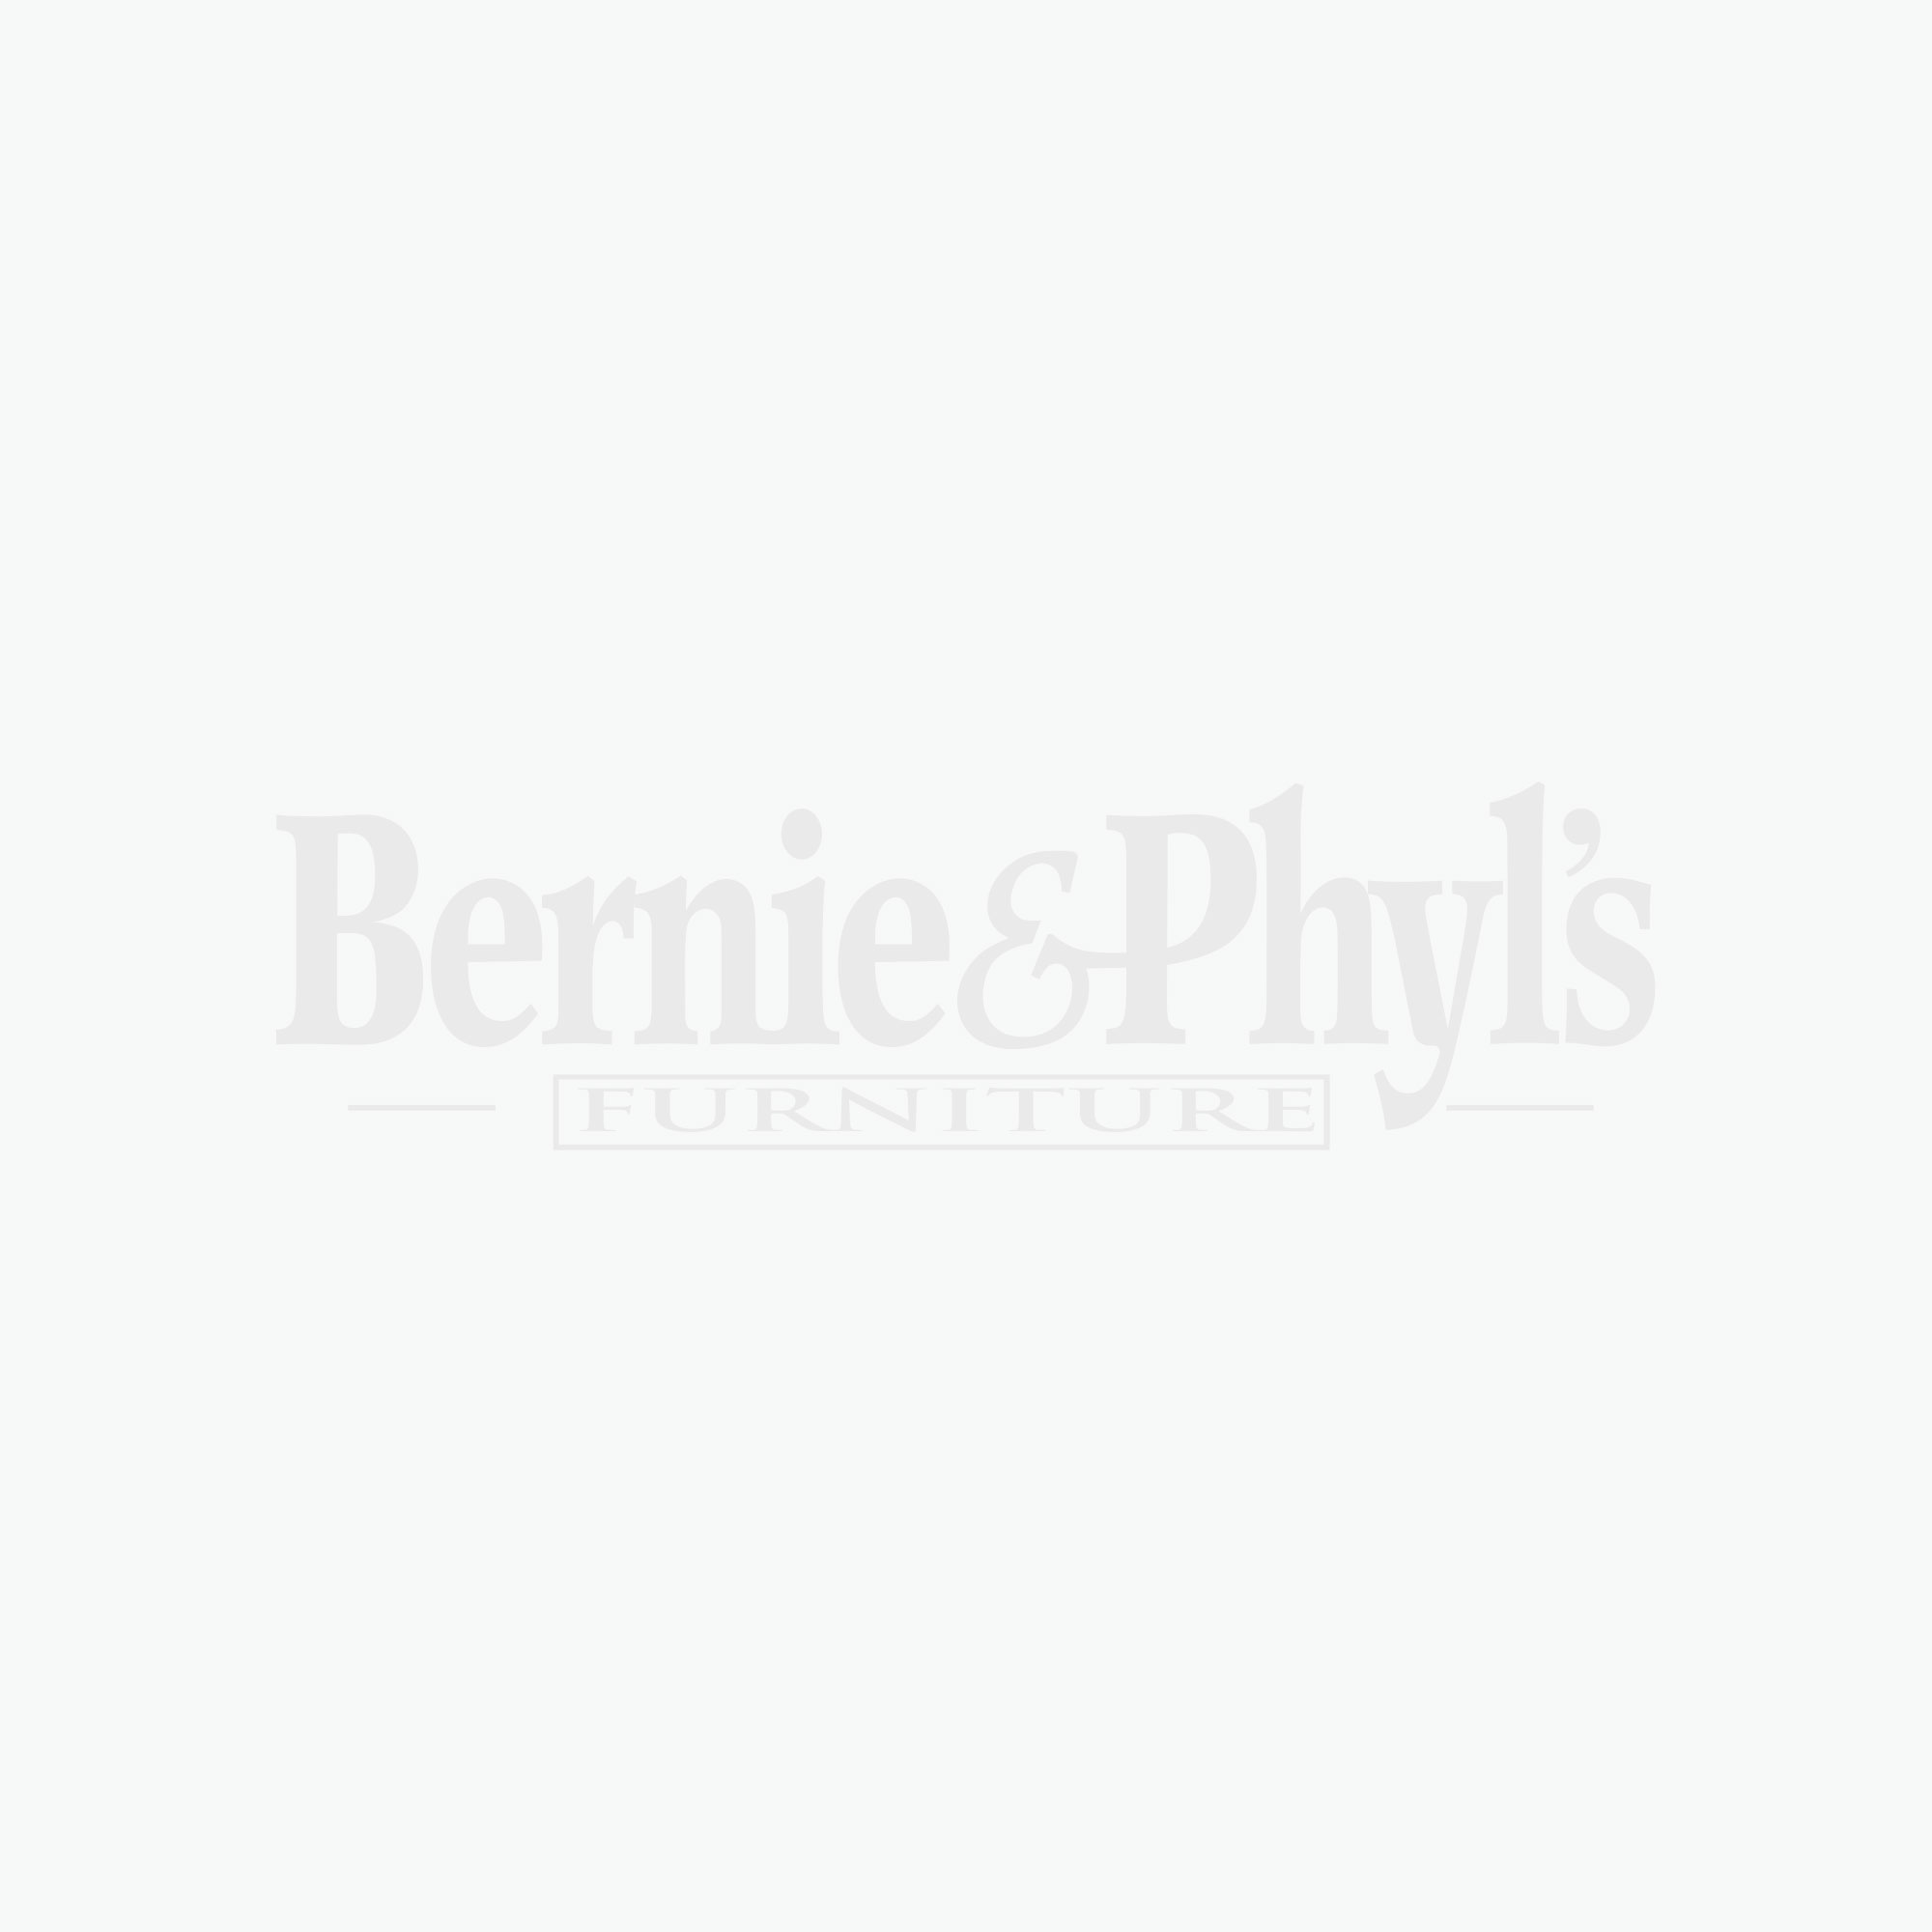 Entryway Storage Rack / Bench Seat - (Set of 1) - HP3191 - by Southern Enterprises